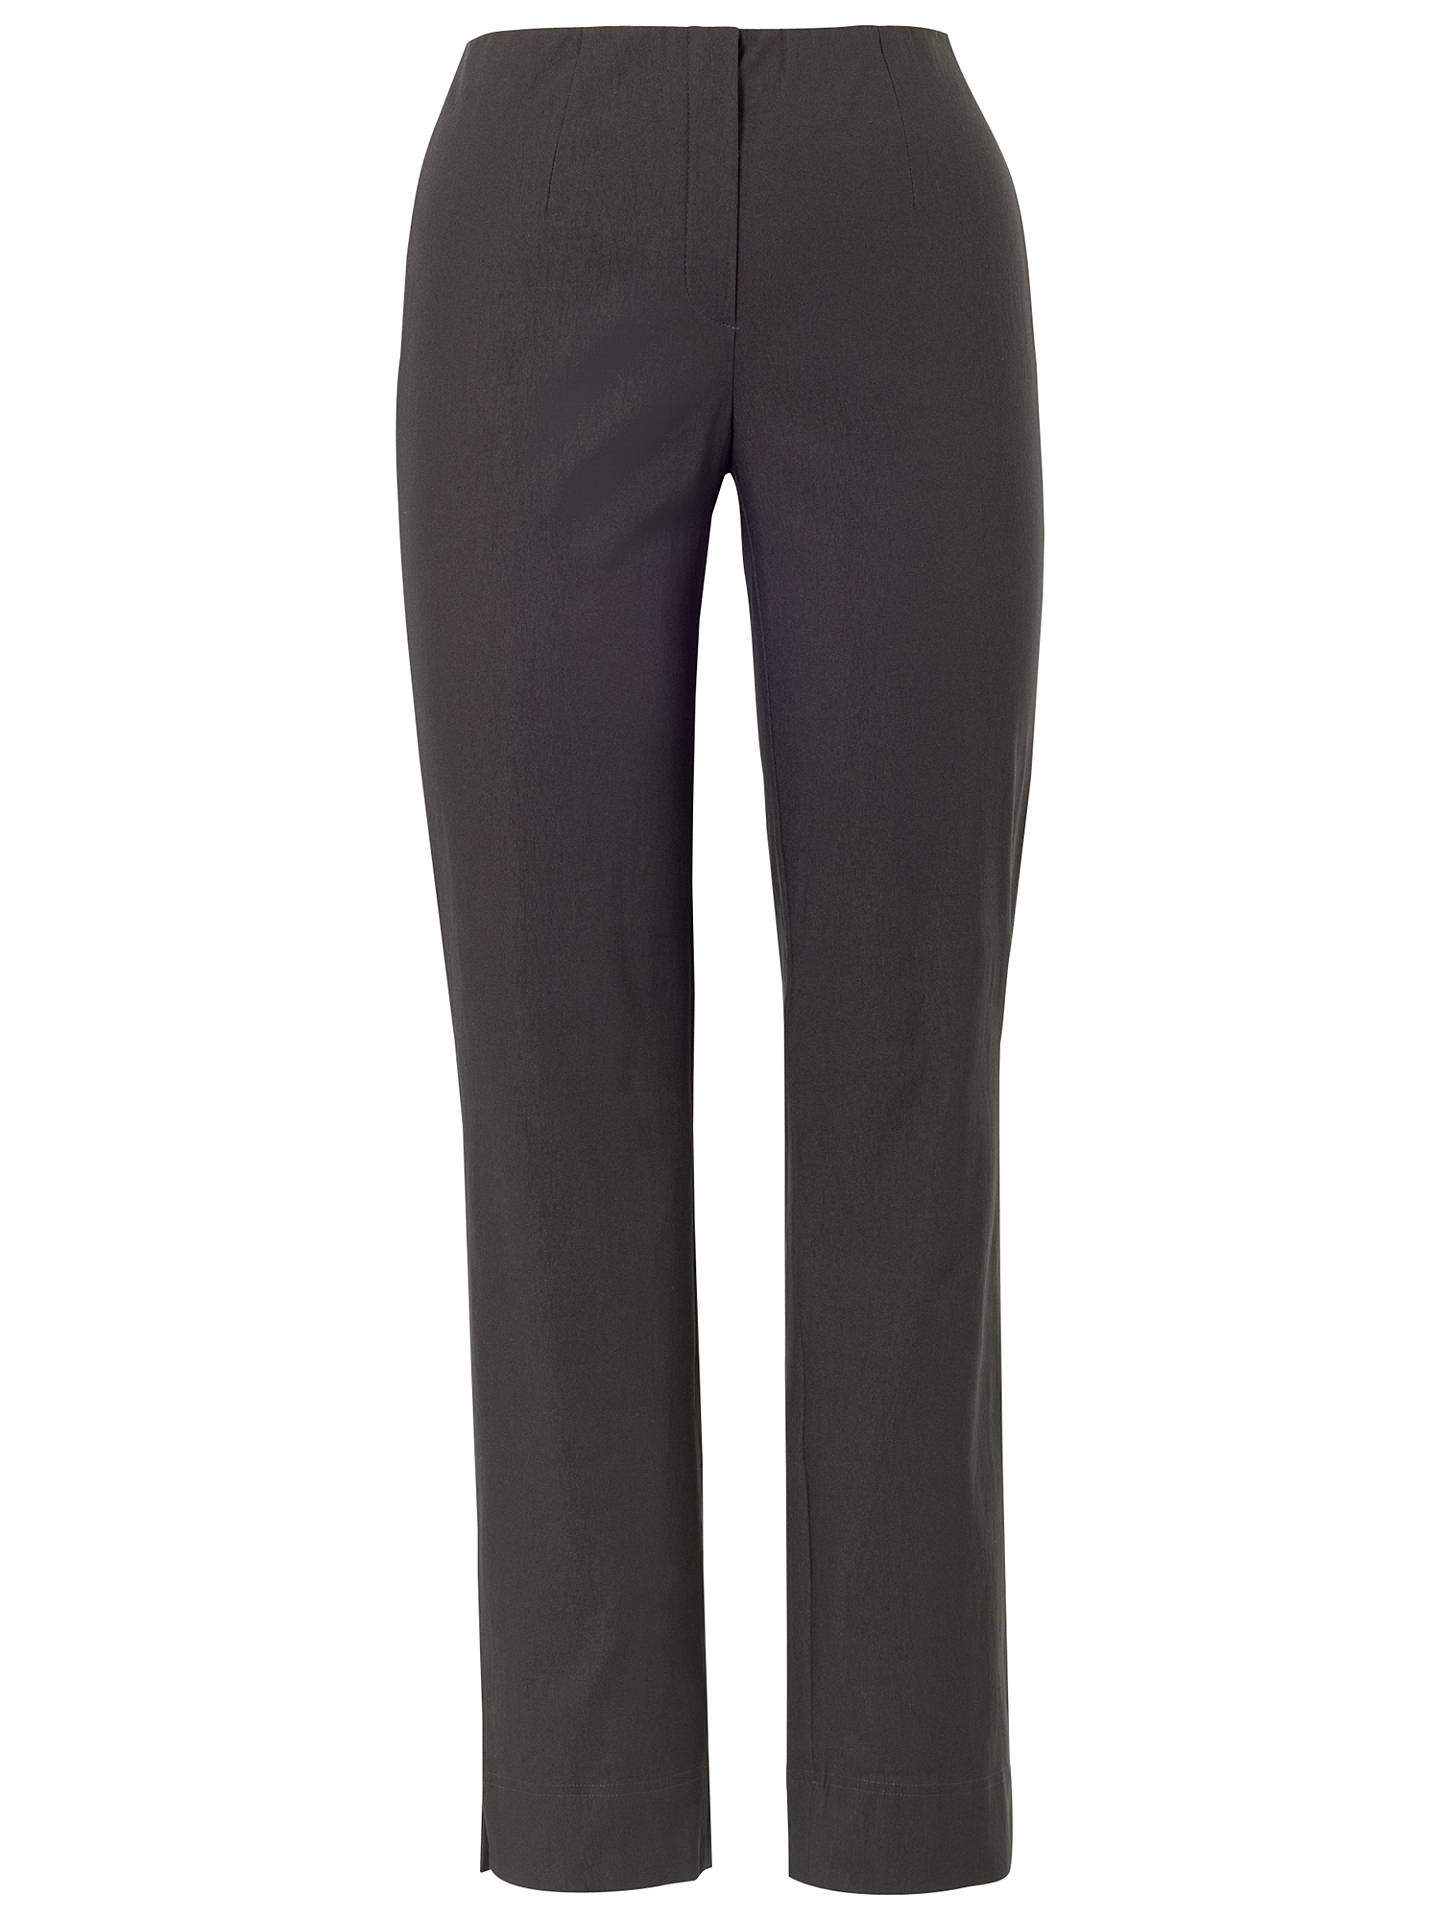 BuyChesca Fleece Lined Trousers, Charcoal, 14 Online at johnlewis.com